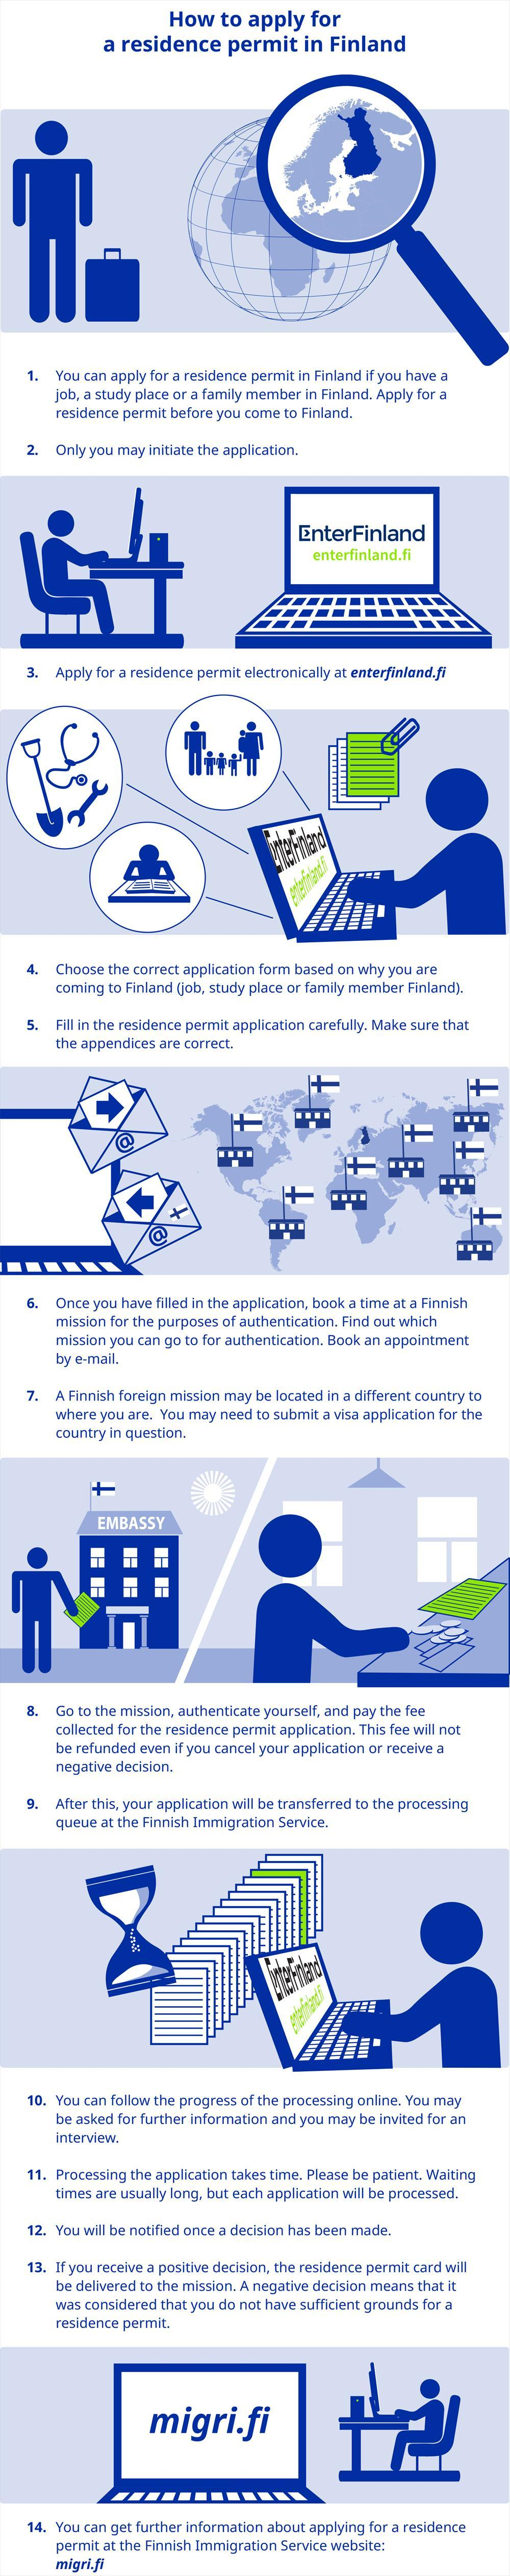 How to apply for a residence permit in Finland